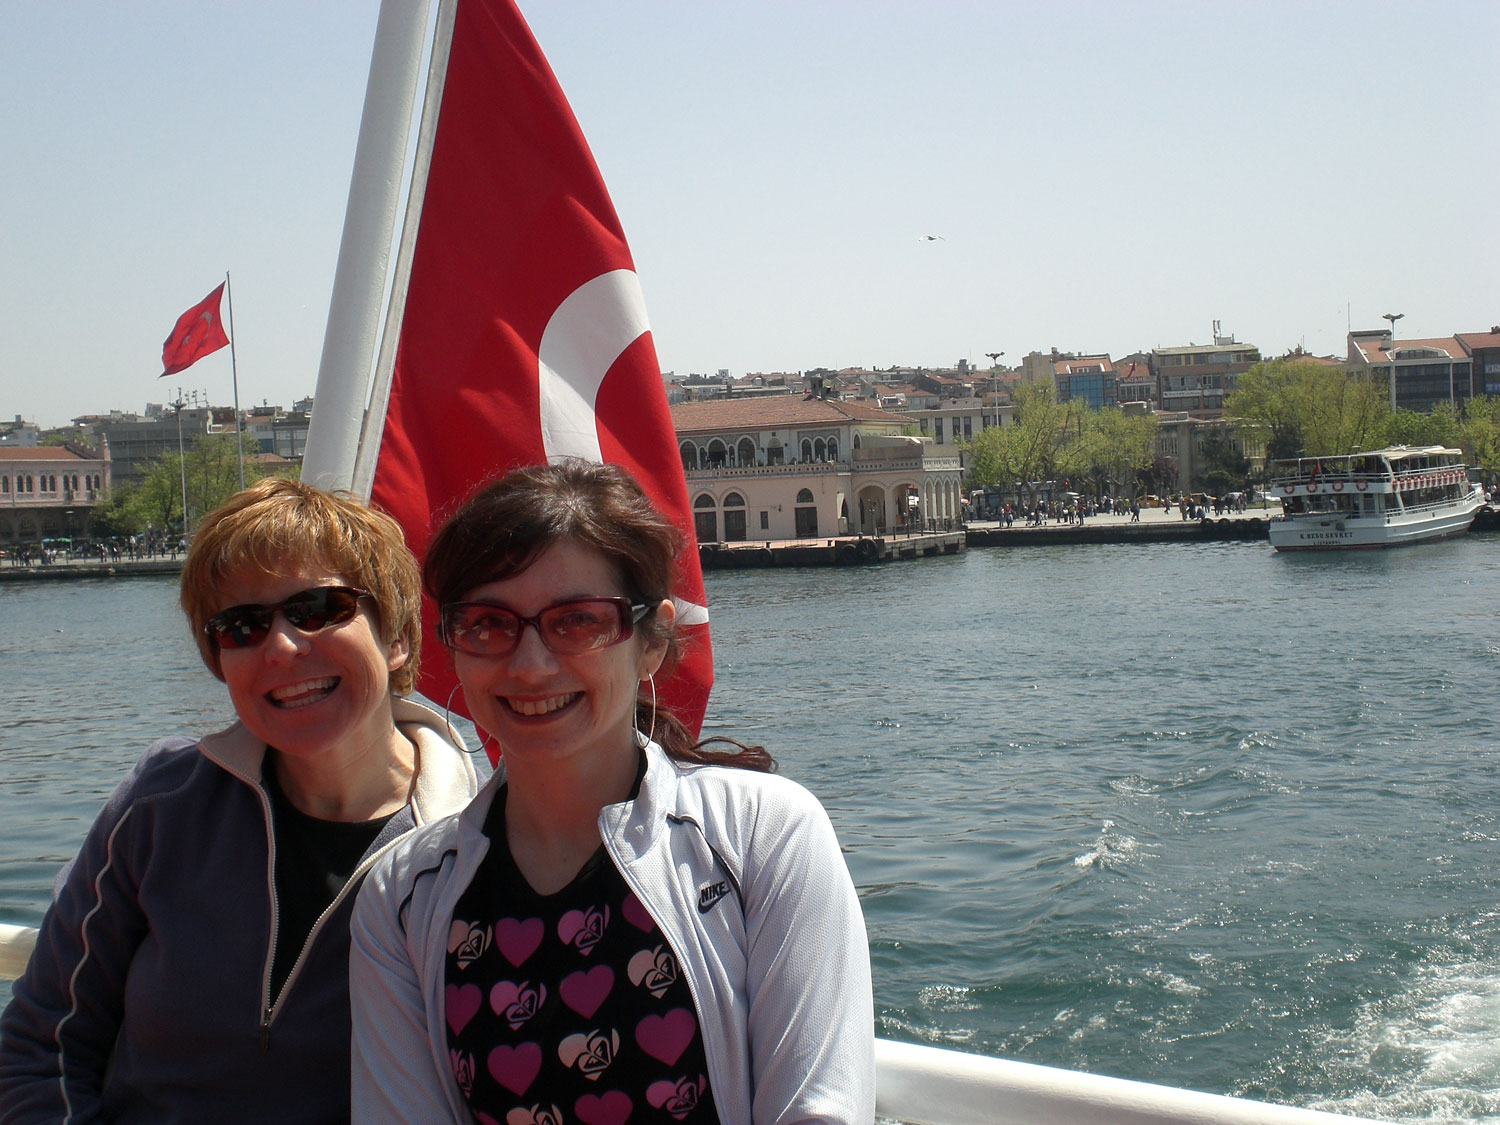 UOIT BEd professors in Turkey